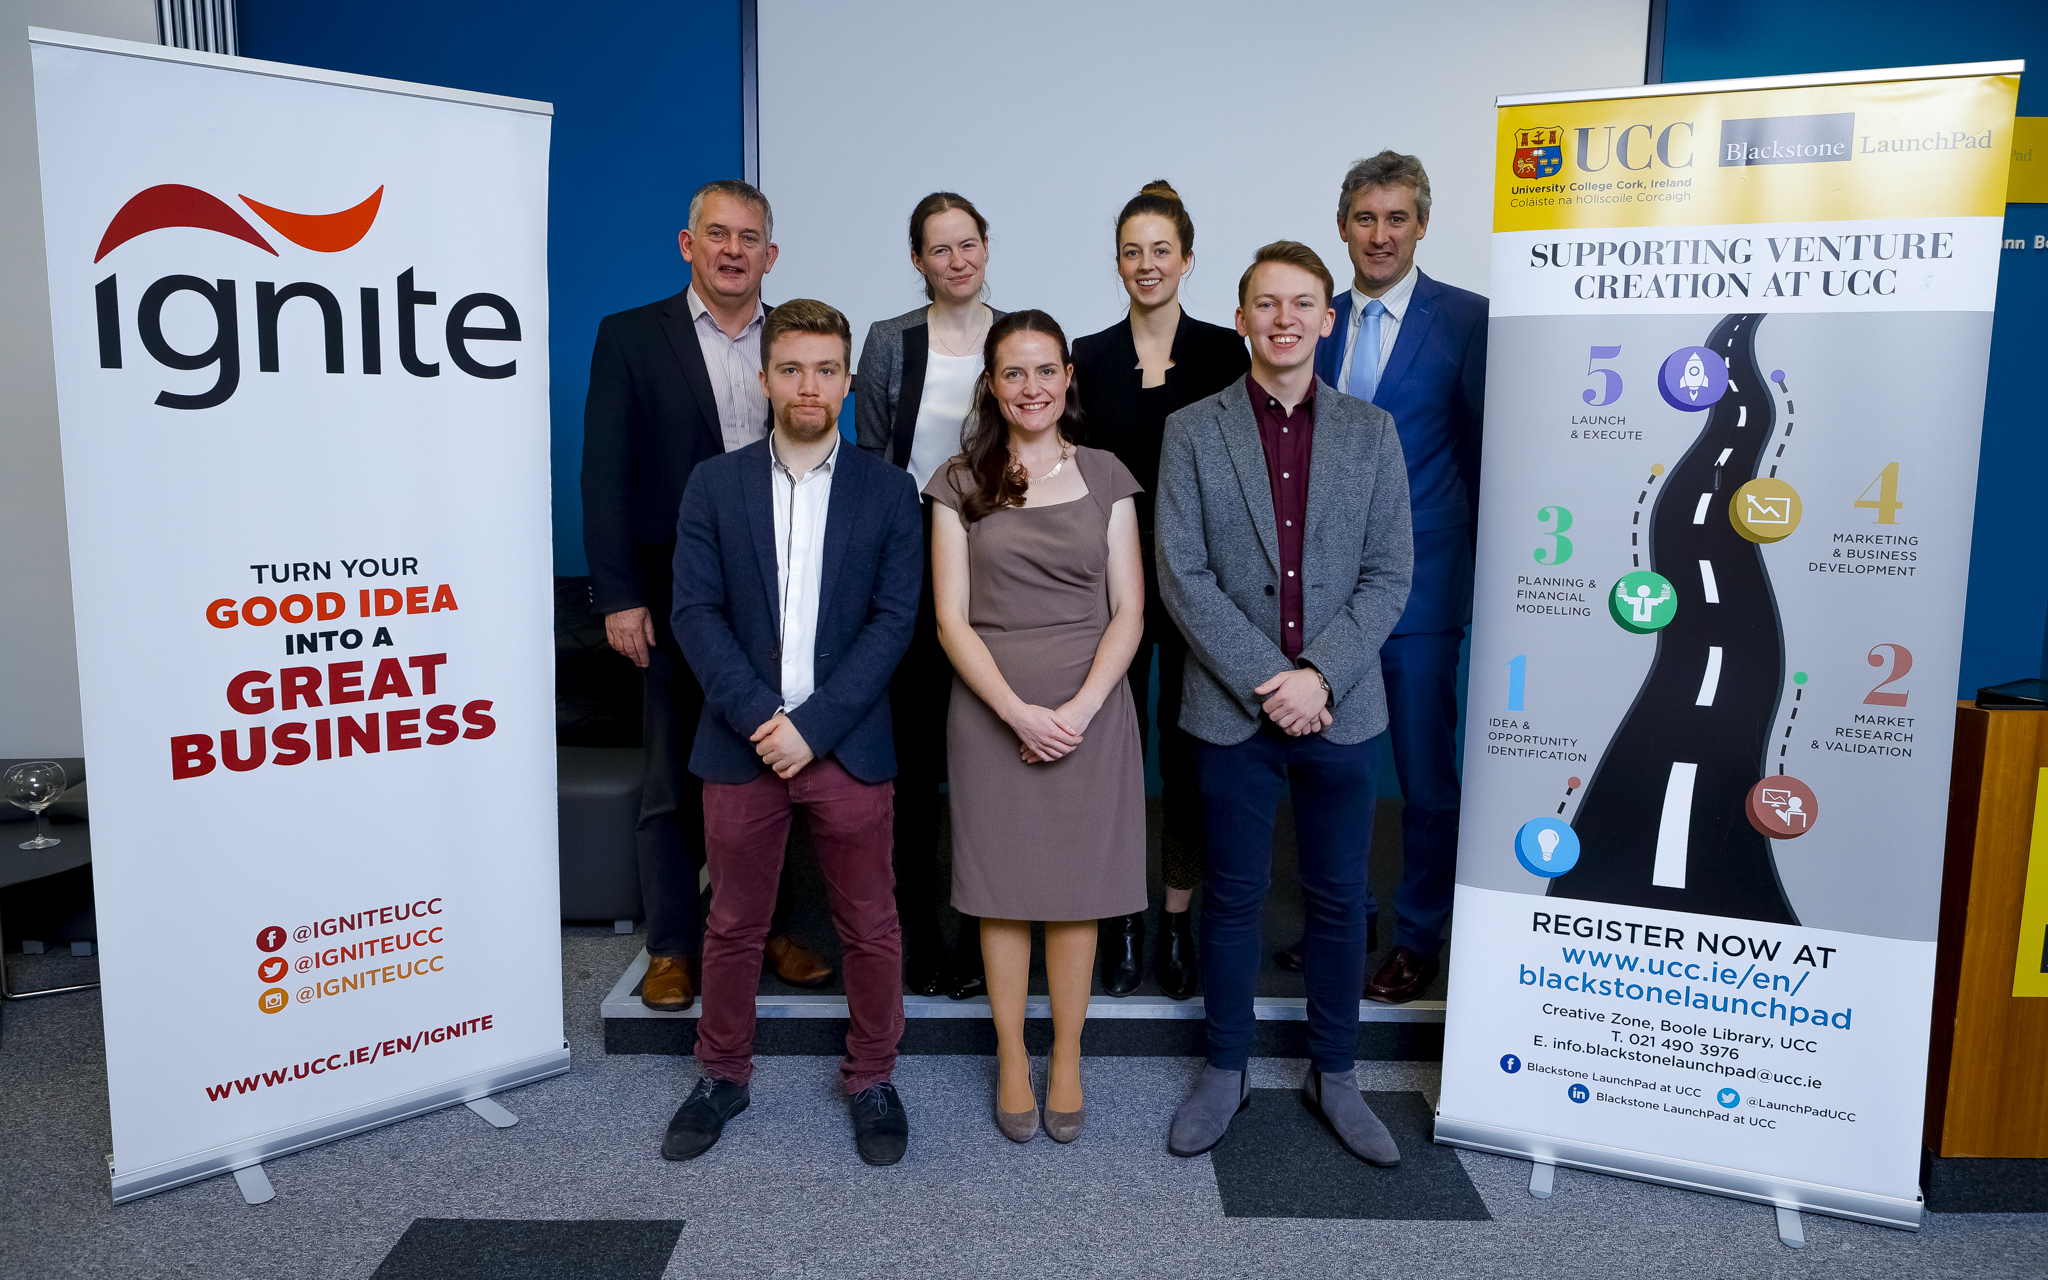 Peckish Named Best Business Idea at UCC Start-Up Workshops